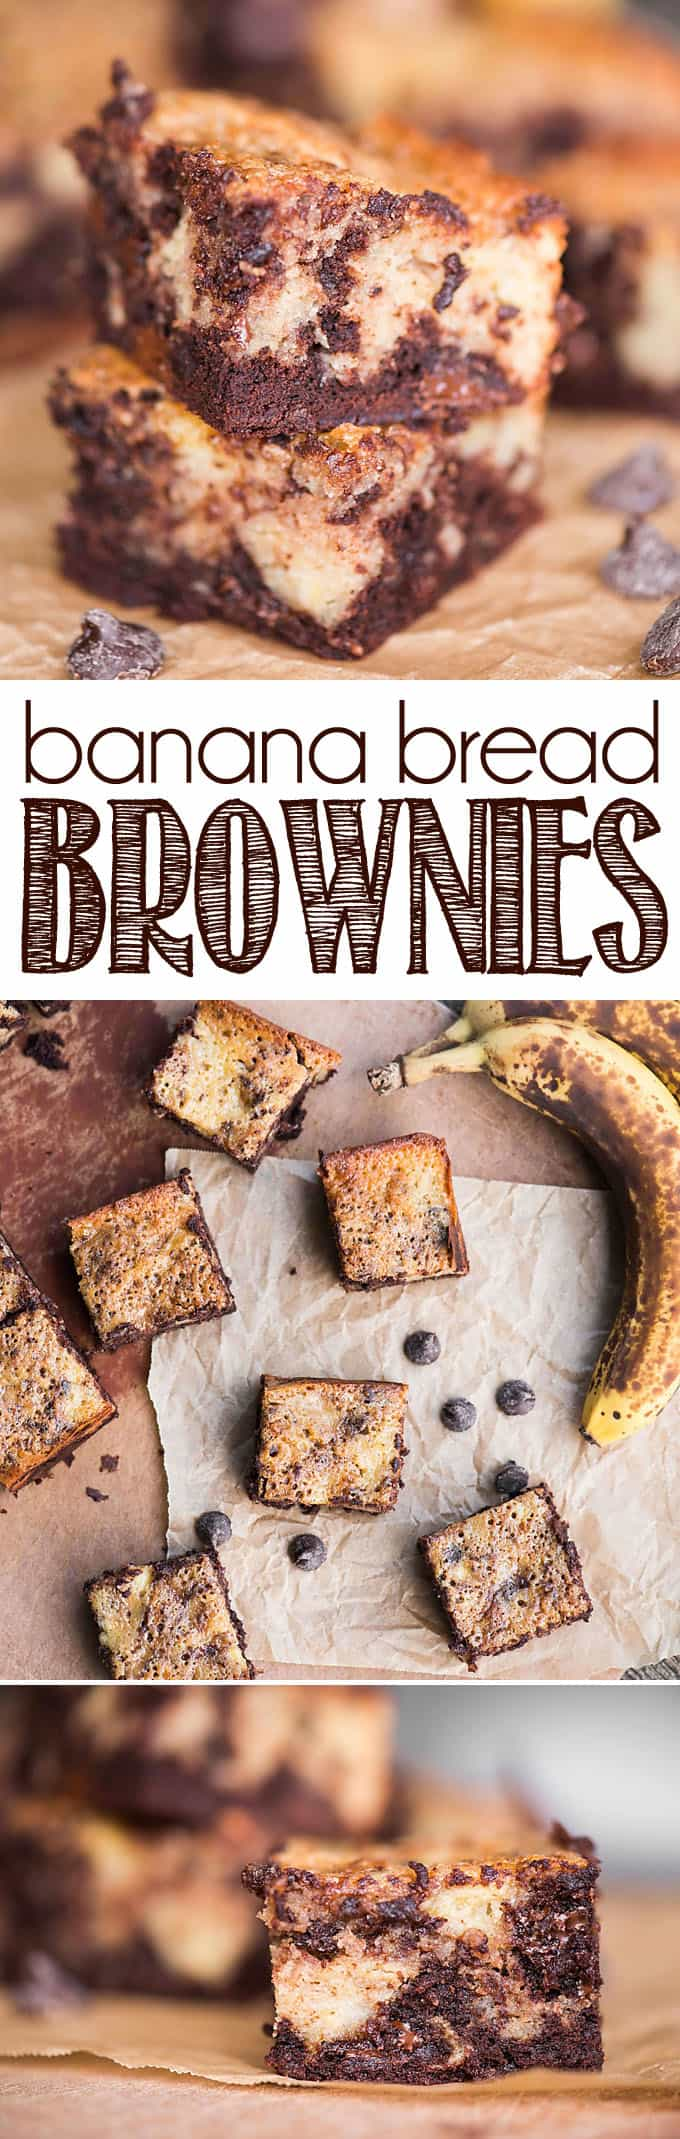 Banana Bread Brownies are the perfect combination of a moist banana bread swirled with a dense chocolate brownie. Banana brownies are a must make dessert!